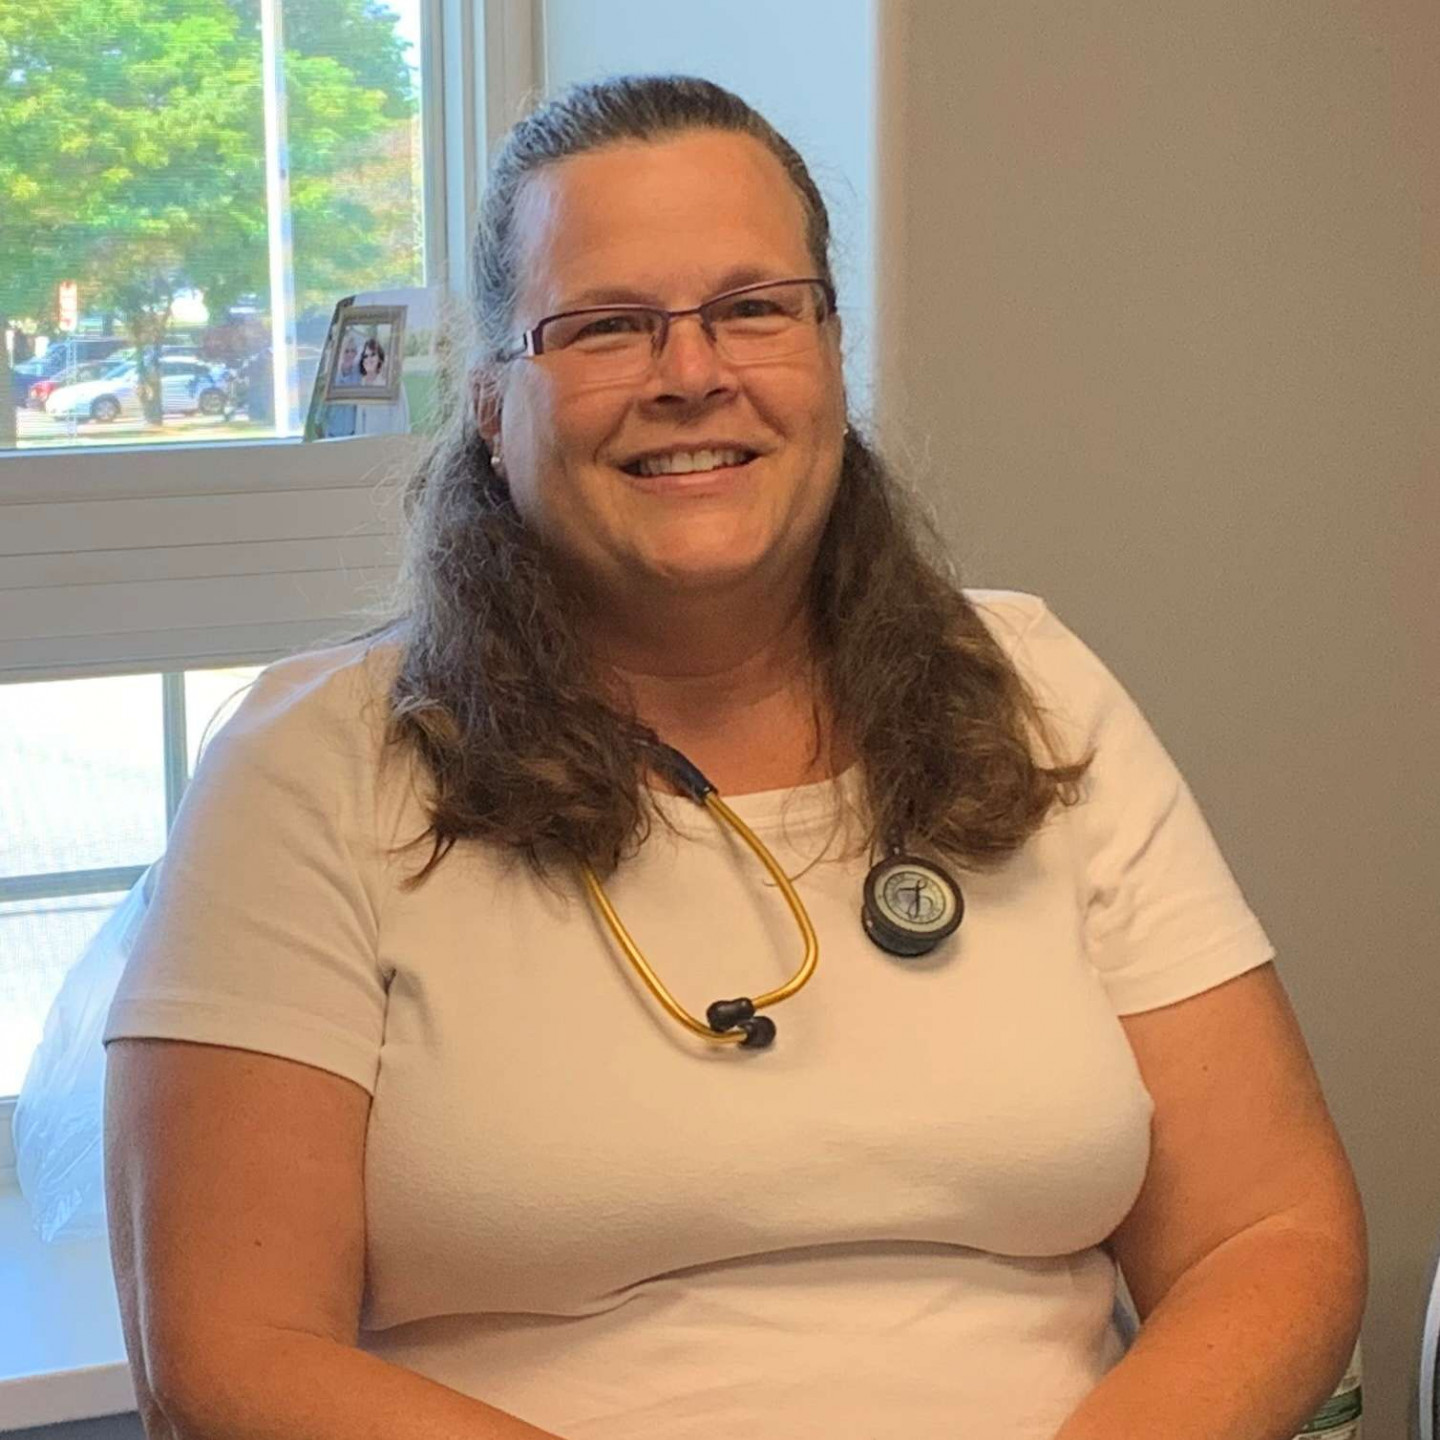 GEORGIA HARGRAVE, CERTIFIED FAMILY NURSE PRACTITIONER